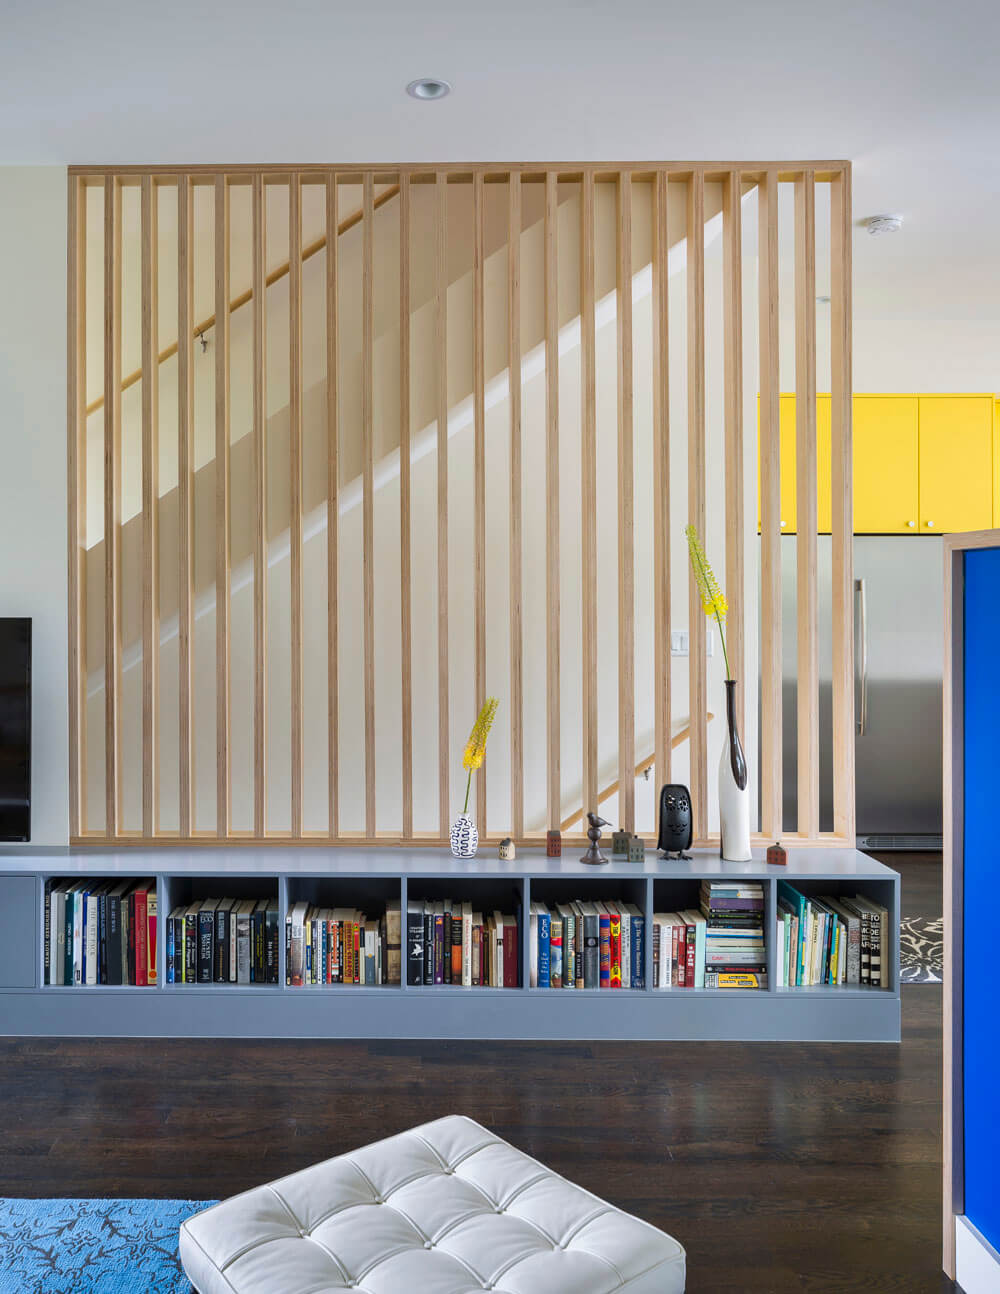 Bright Interior Design Ideas for Private House. Nice grid form of the staircase fence